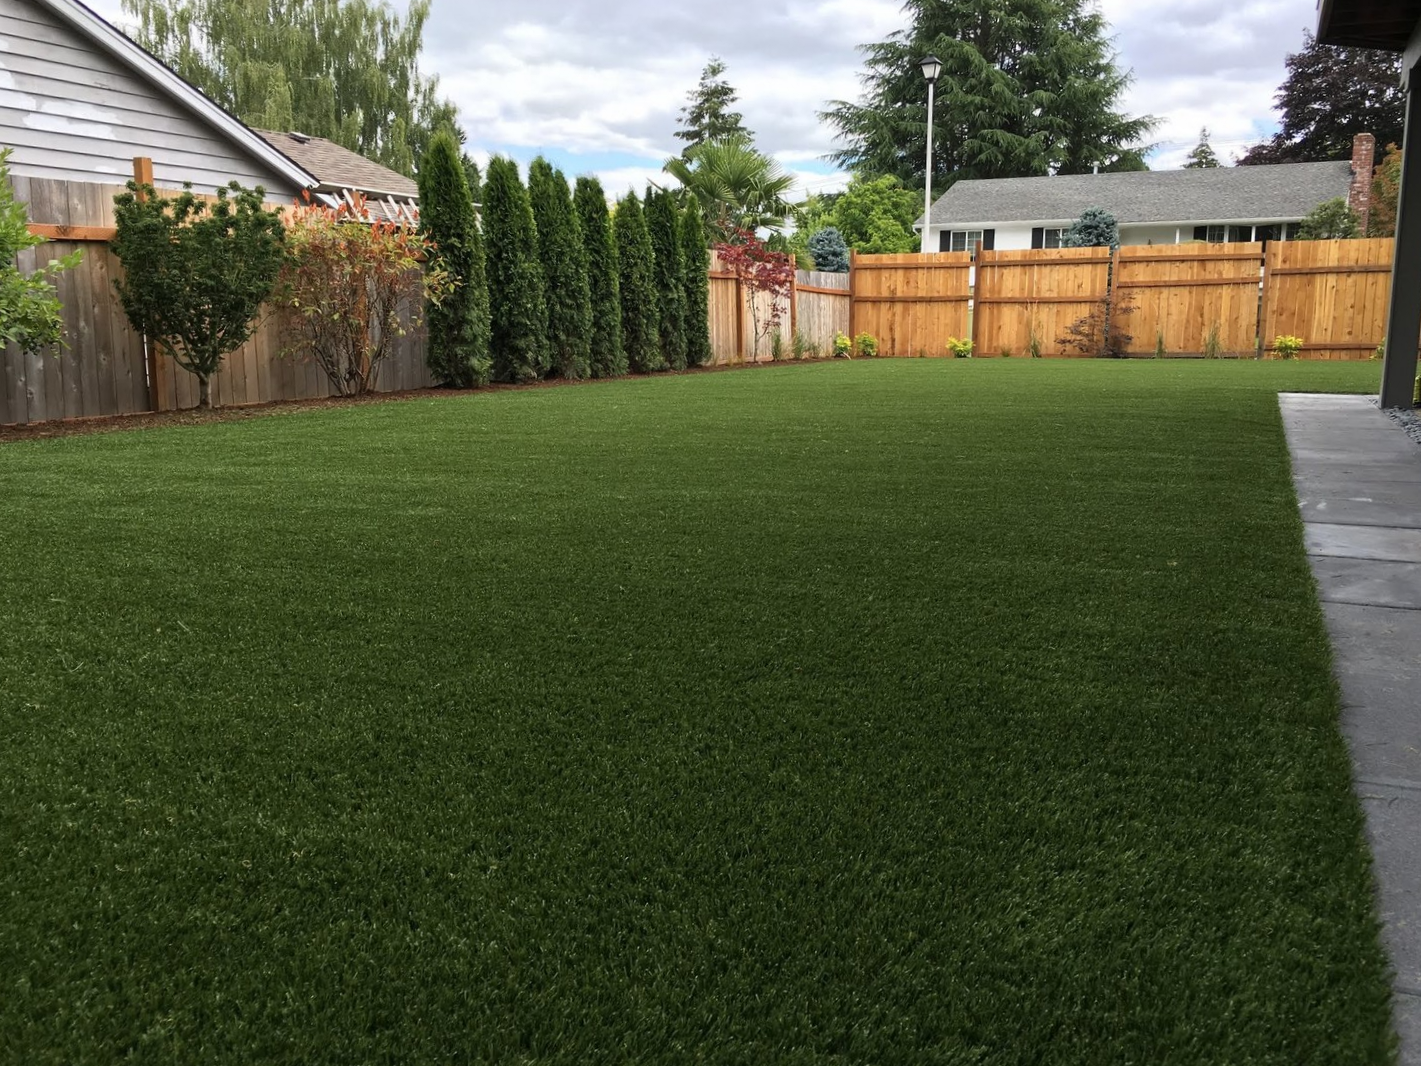 10 Reasons To Think Twice About Artificial Turf (From A Designer Who